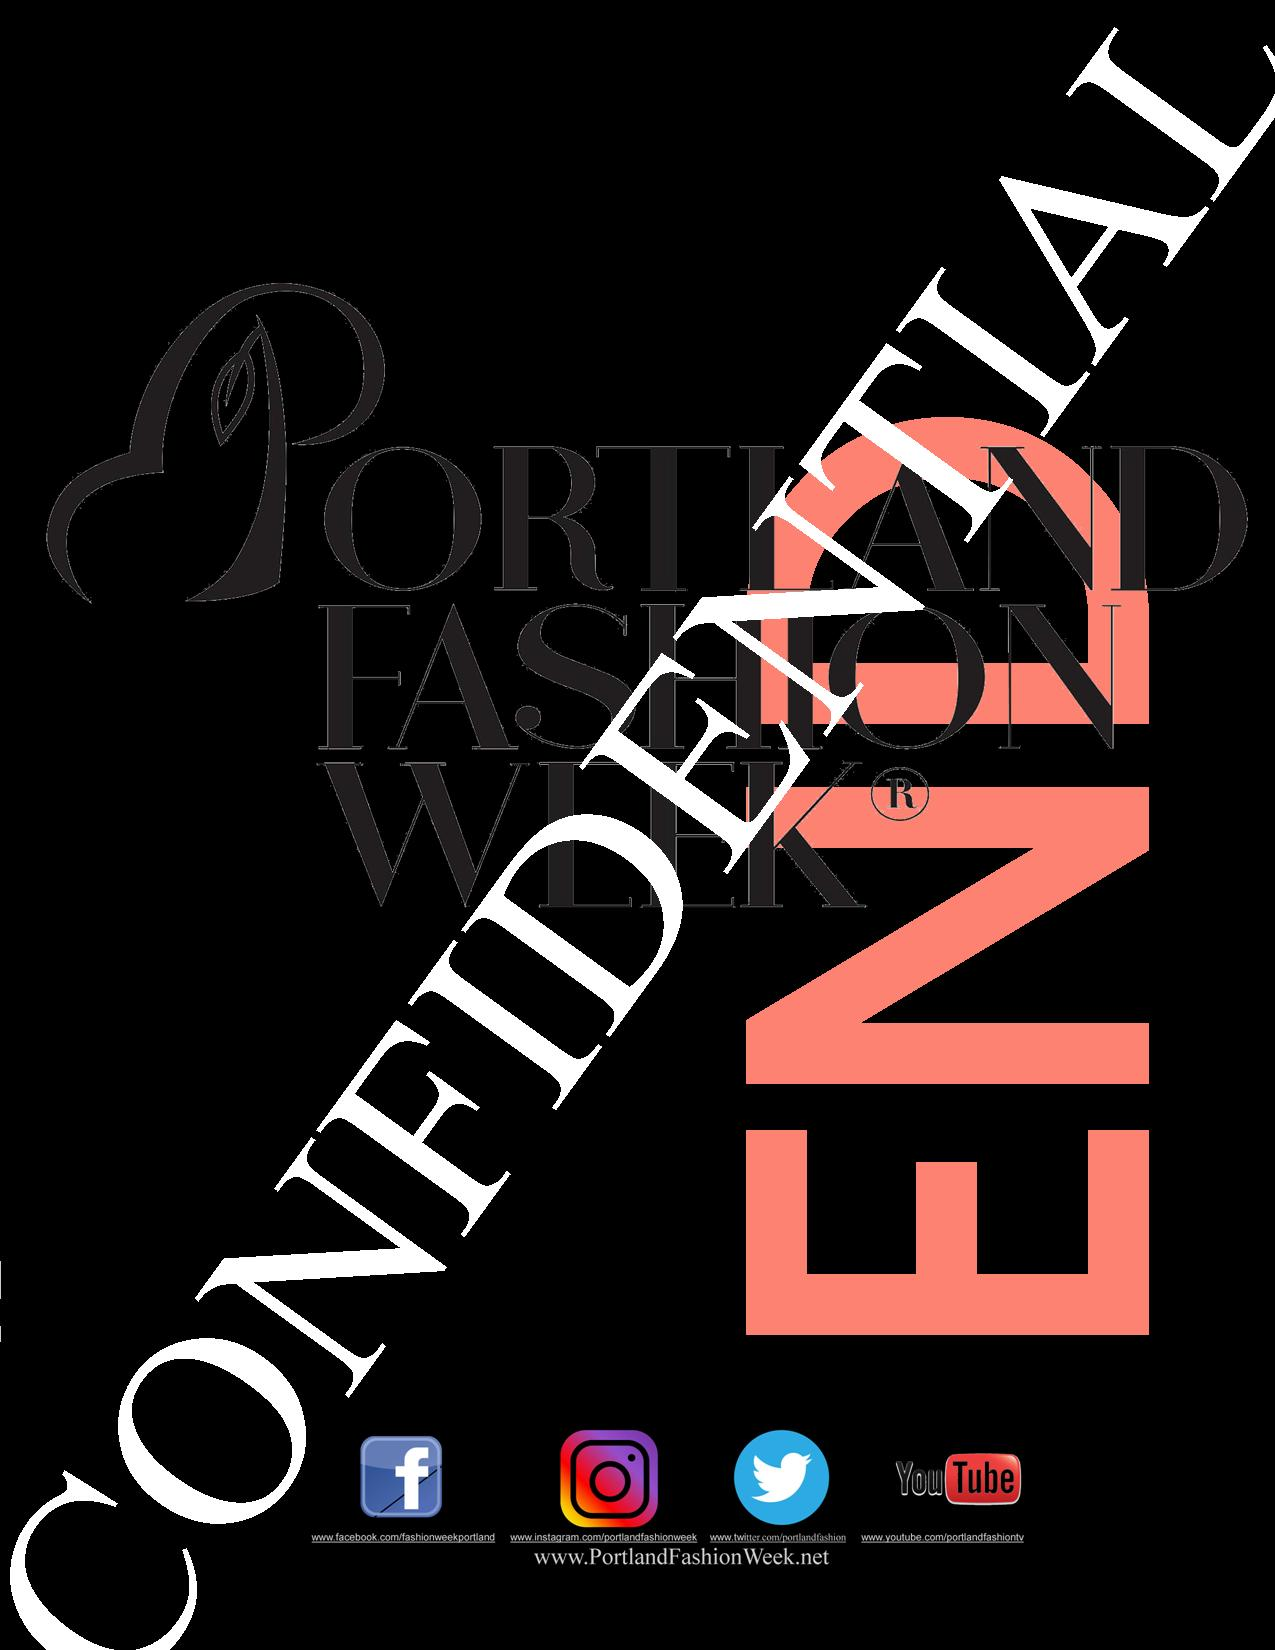 ANOTHER first for  Portland Fashion Week ! Four fabulous days of sales, styling, nightlife and fashion!